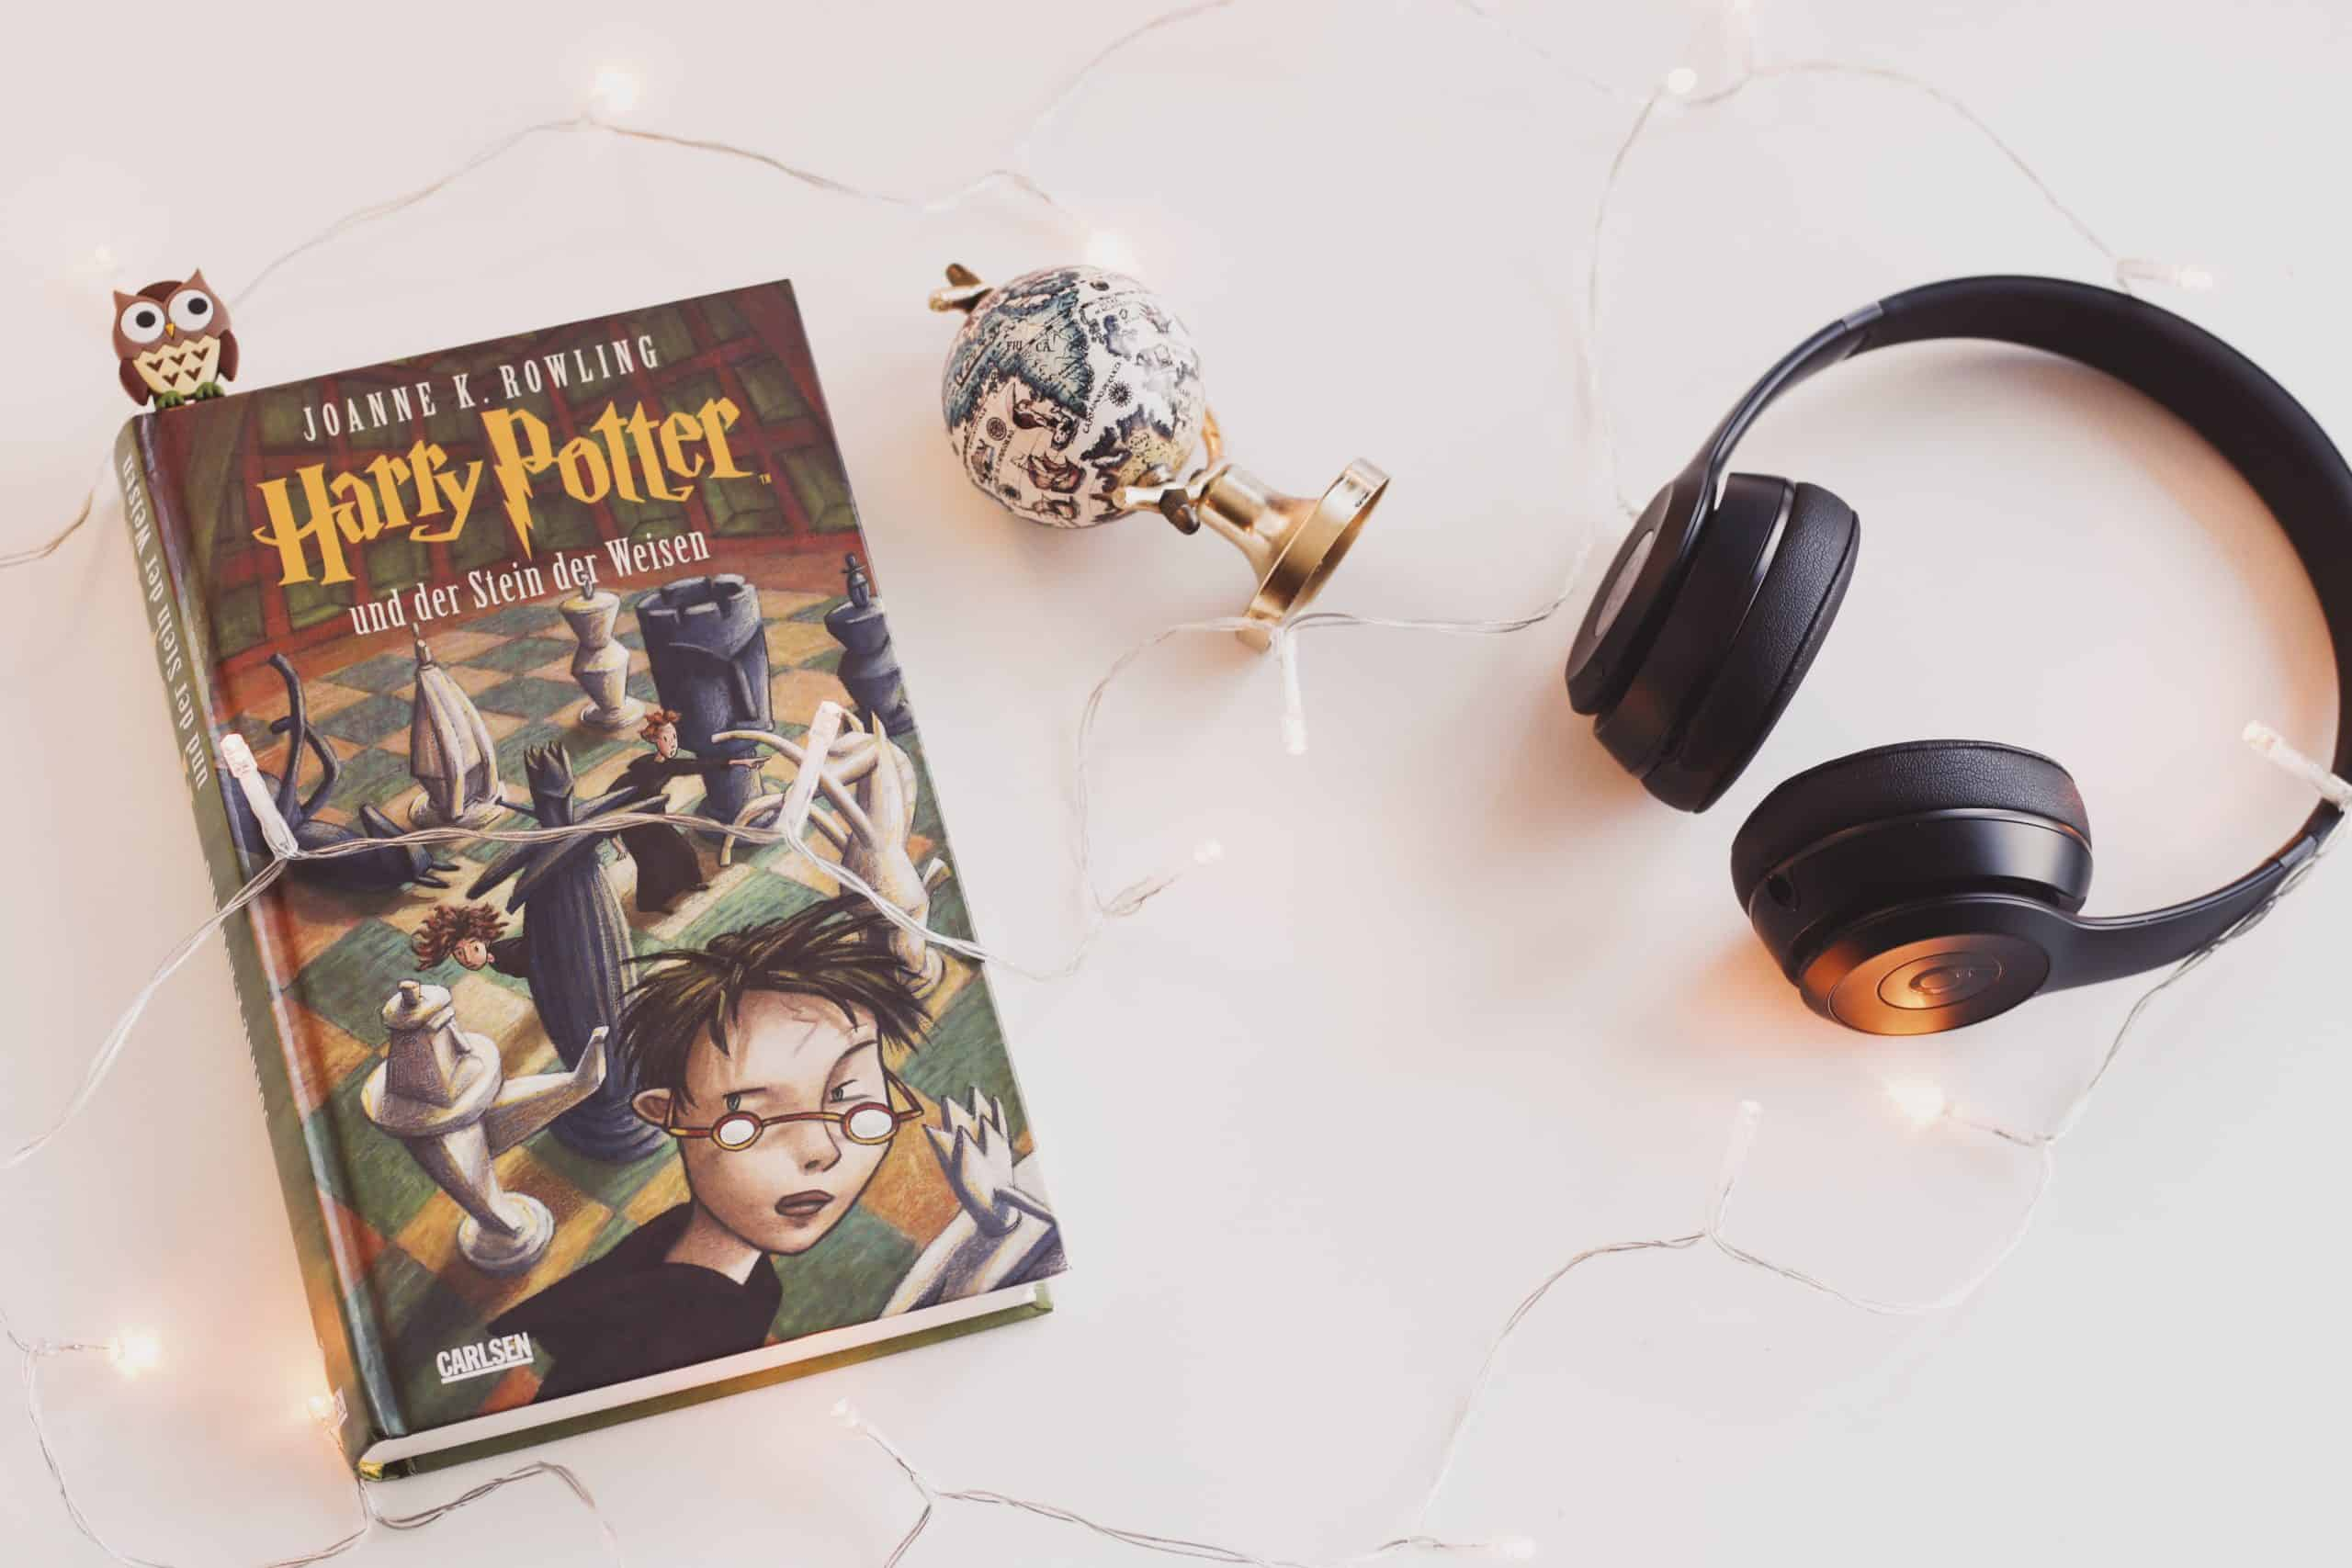 Learning About The Harry Potter Books From My Teenage Years